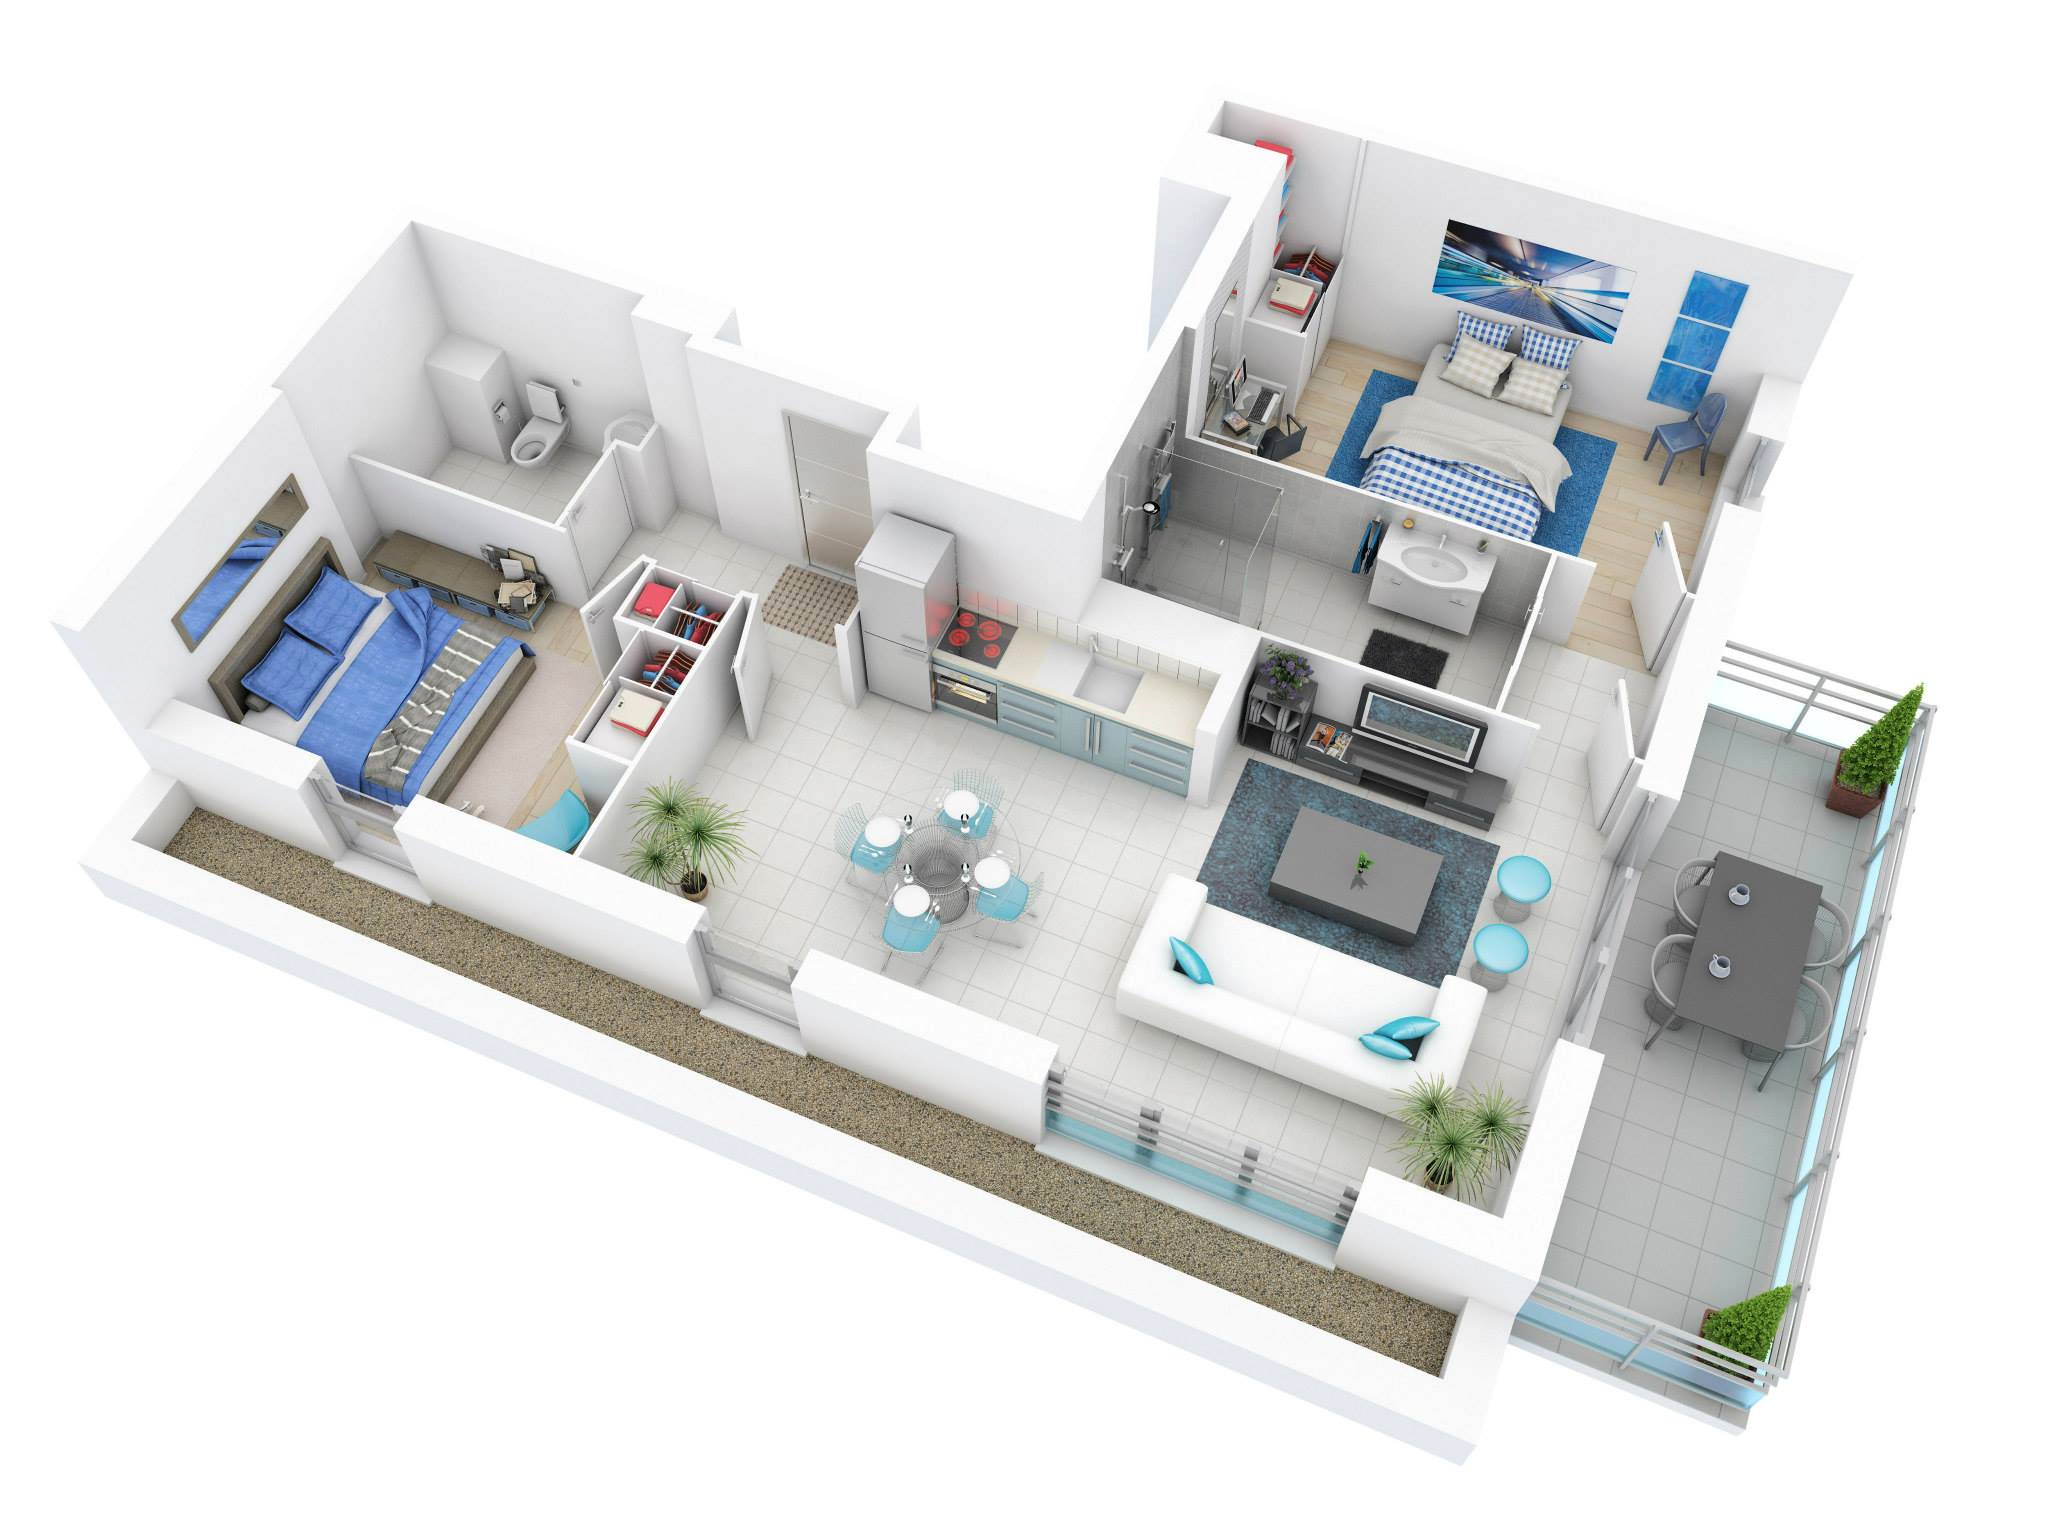 25 More 2 Bedroom 3d Floor Plans 7. office interior design. interior ...